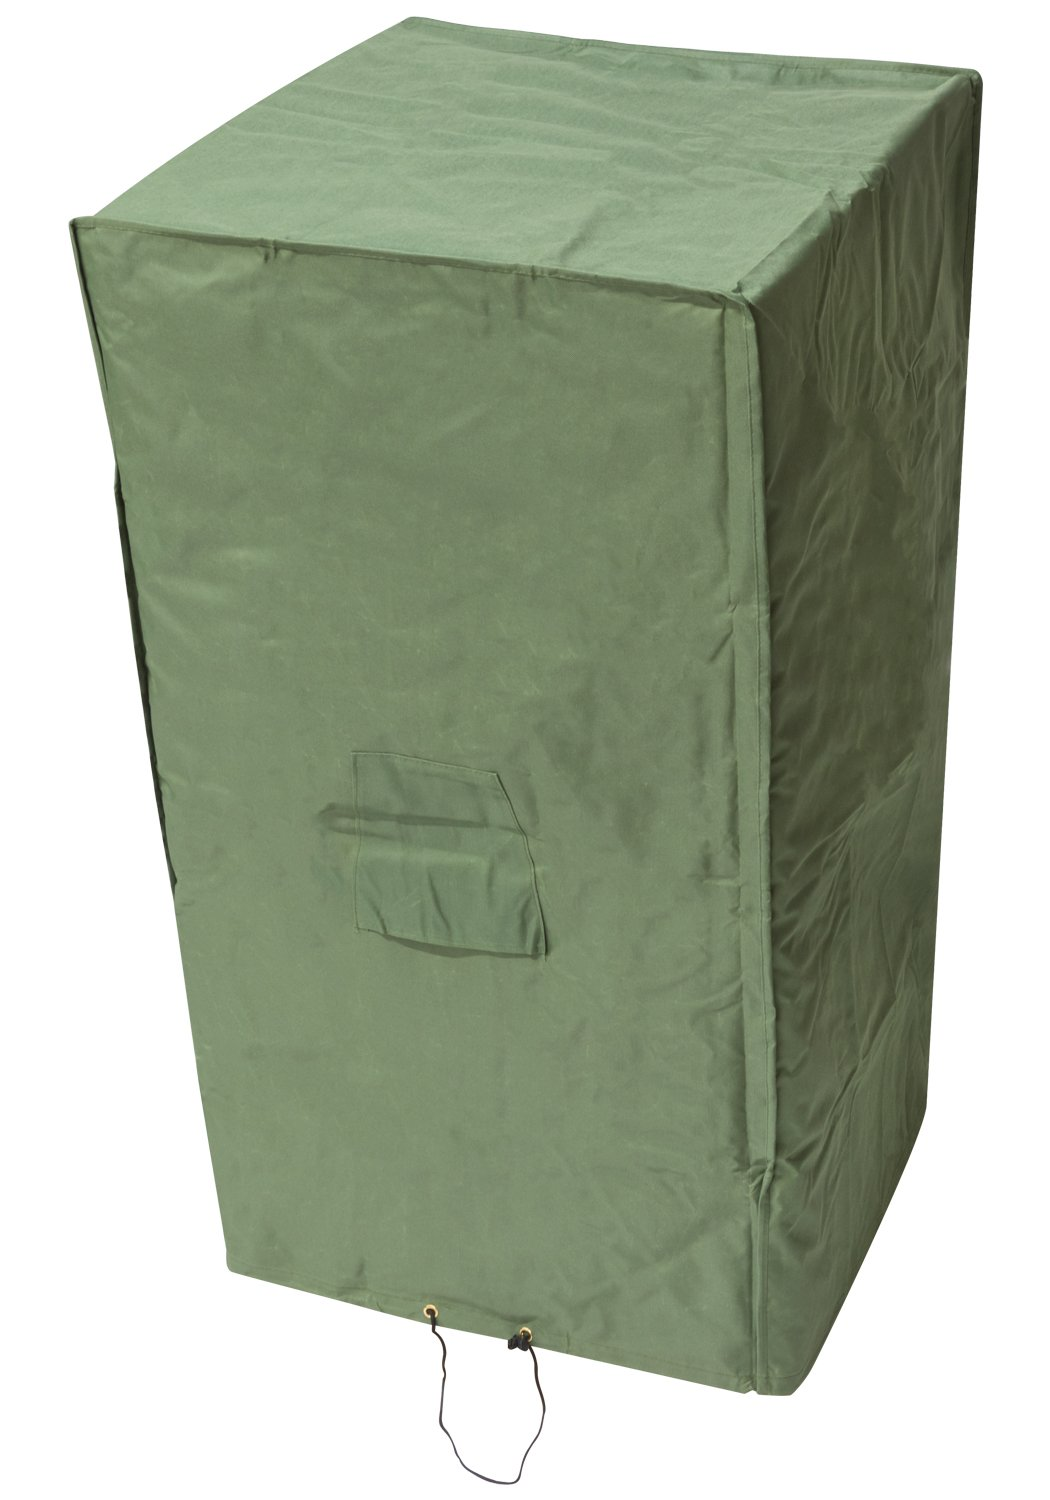 Oxbridge Green Outdoor Garden Stacking Chair Cover 0.66m x 0.66m x 1.22m/2.2ft x 2.2ft x 4ft 5 YEAR GUARANTEE